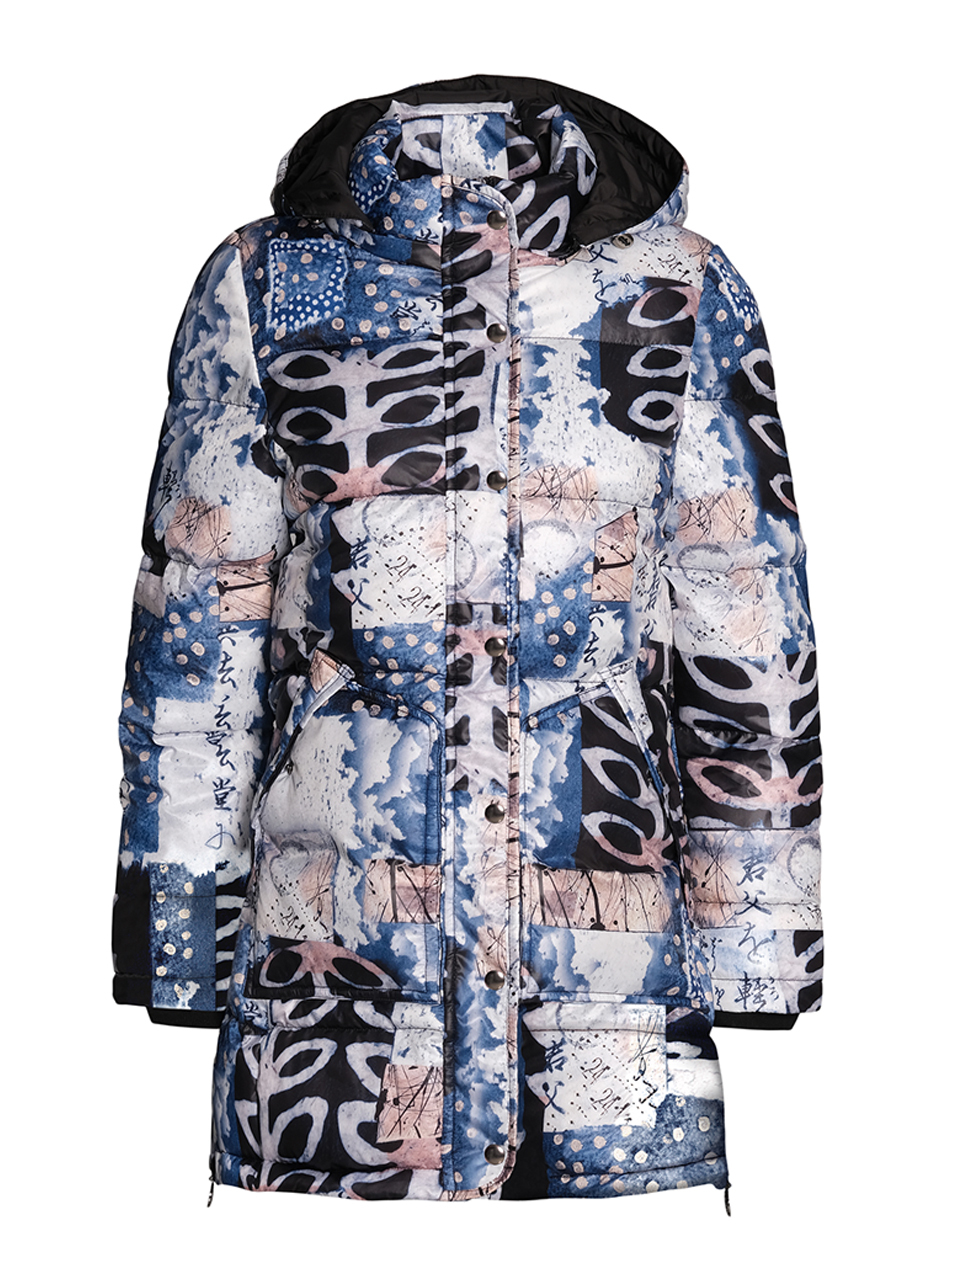 Simply Art Dolcezza: Papers In Color Abstract Art Long Puffer Coat (With Side Zips!) Dolcezza_SimplyArt_71846